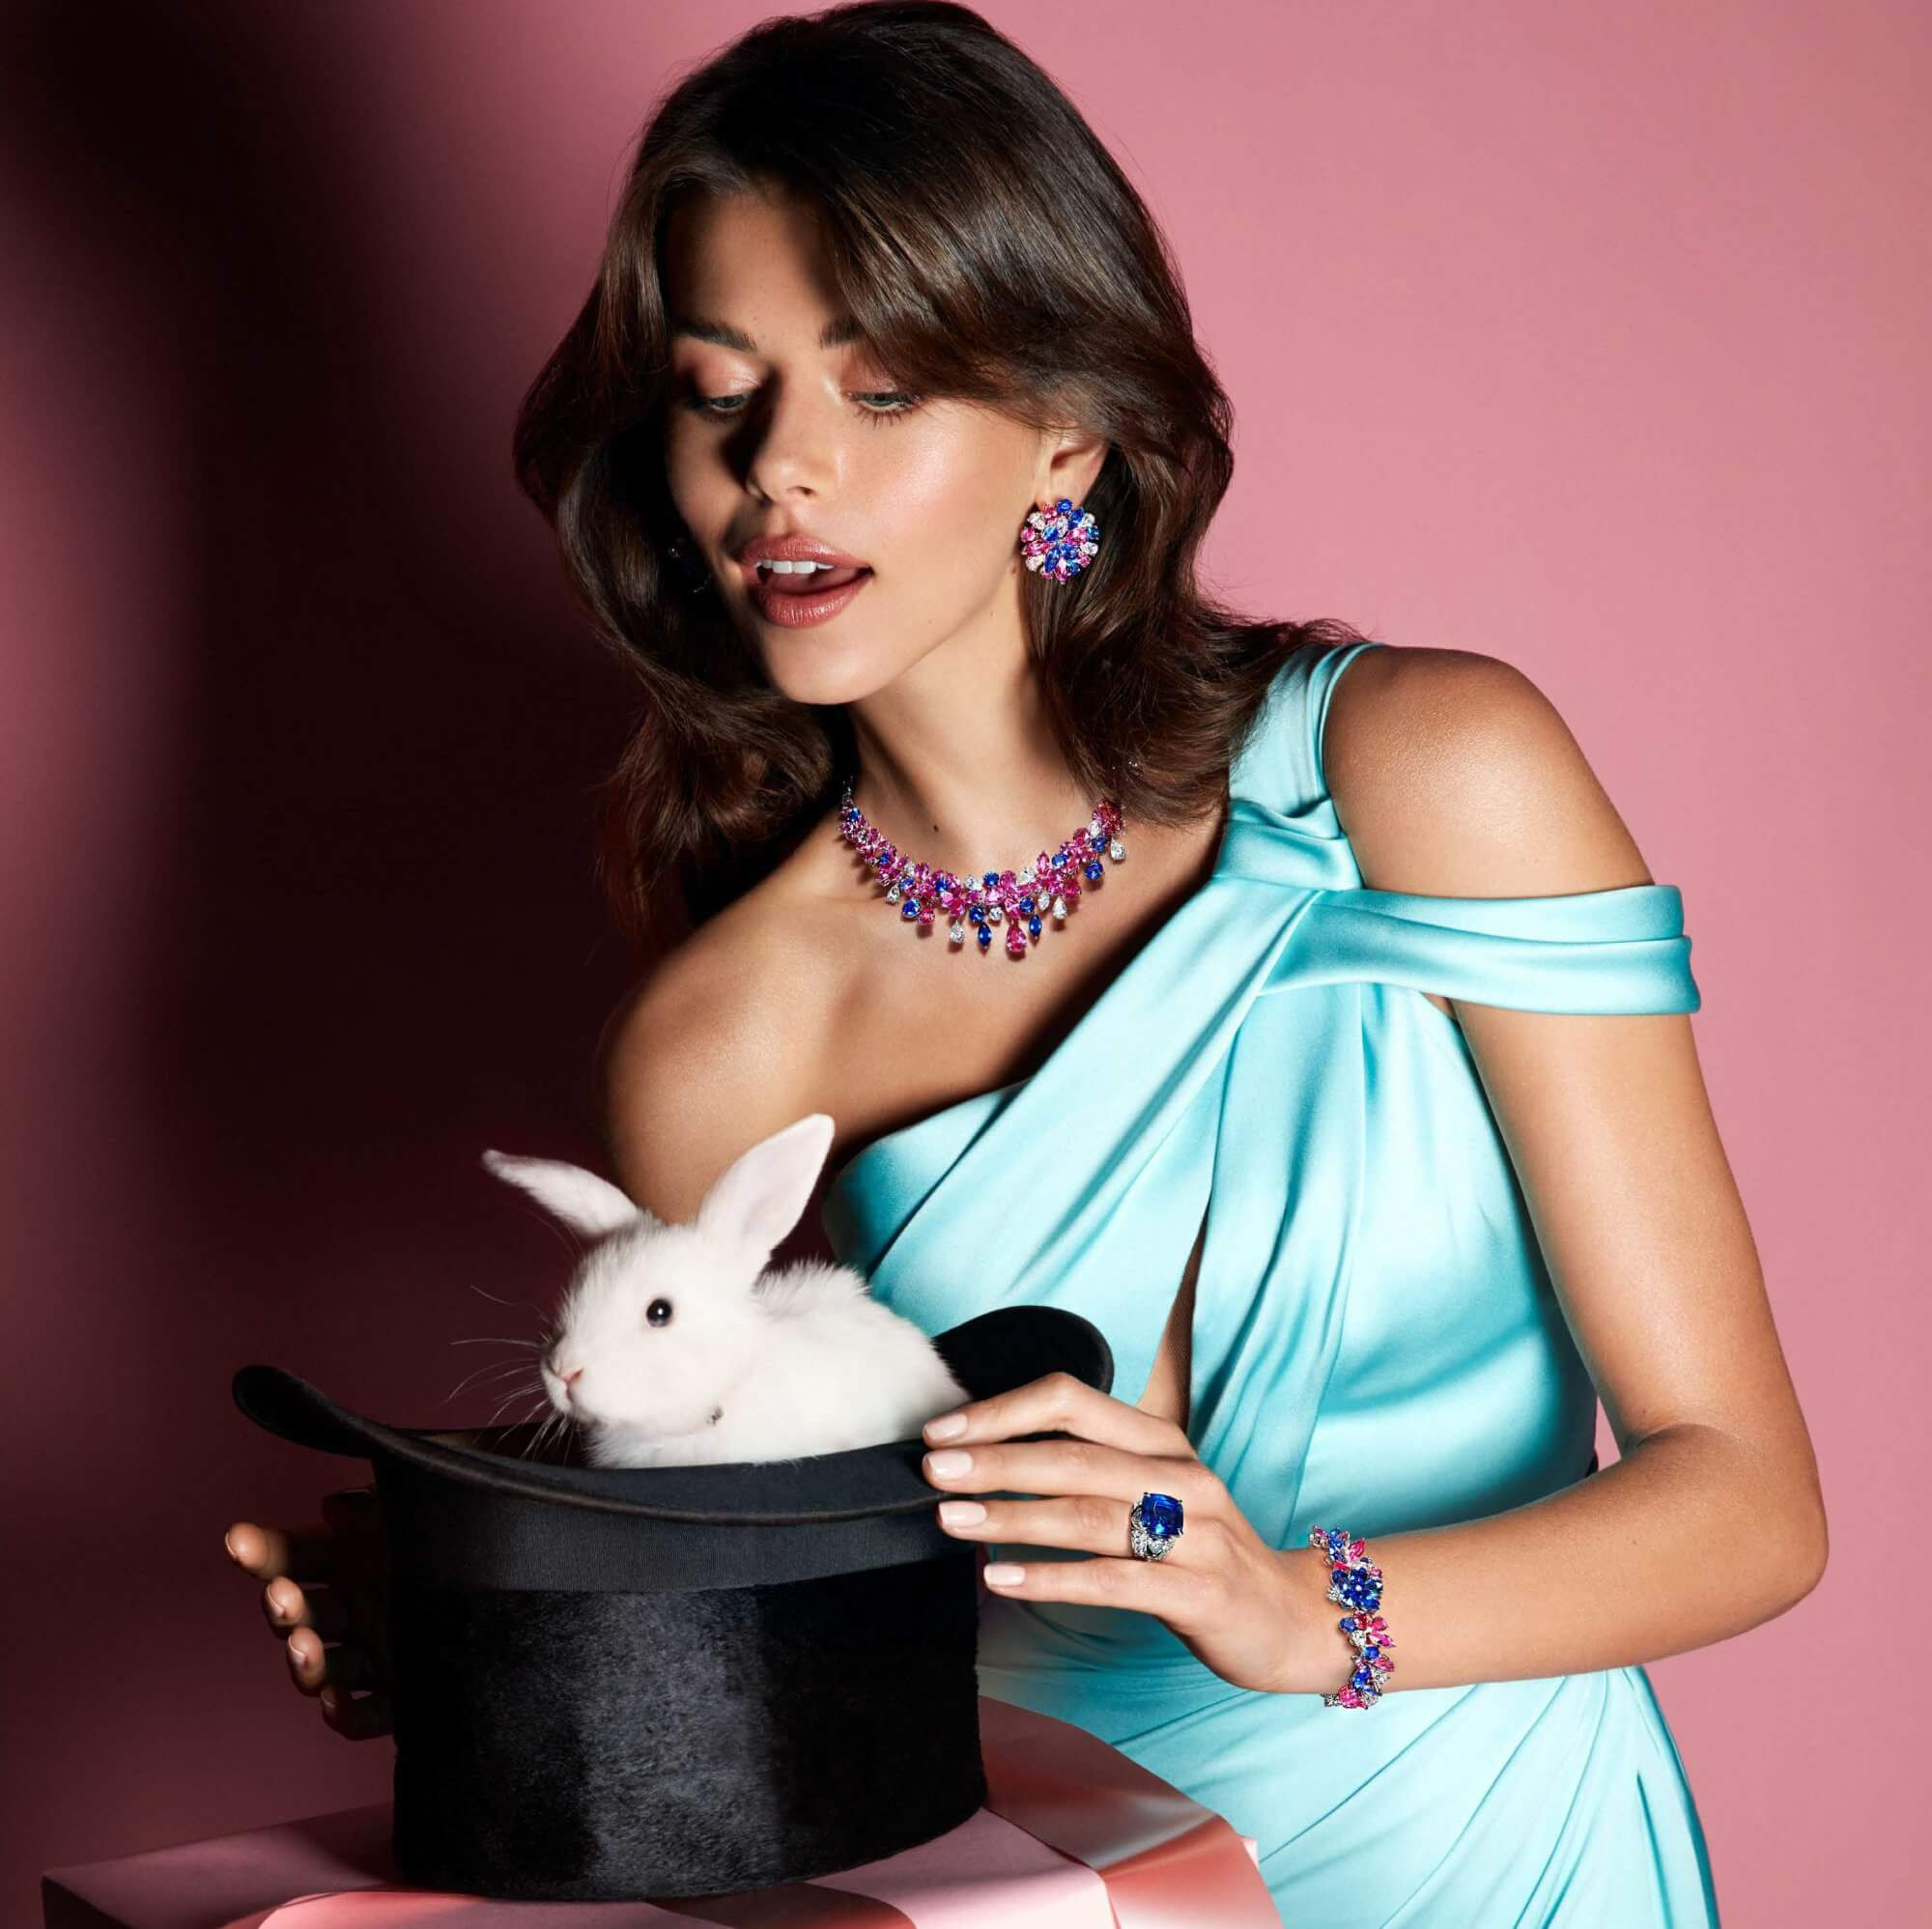 Graff Diamonds La Grande Soiree Pink and blue sapphire-and diamond necklace and earrings